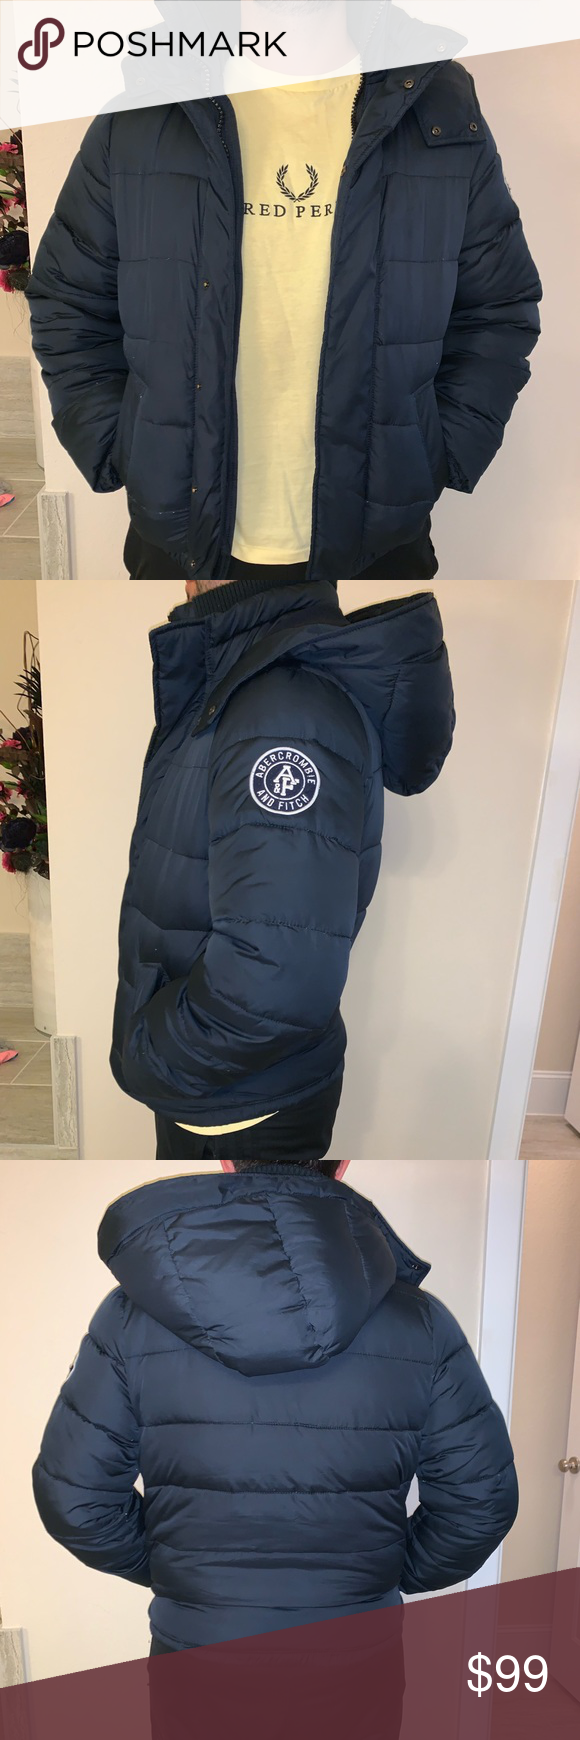 Puffer Jacket Excellent Condition Abercrombie Fitch Jackets Coats Puffers Blue Puffer Jacket Jackets Puffer Jackets [ 1740 x 580 Pixel ]